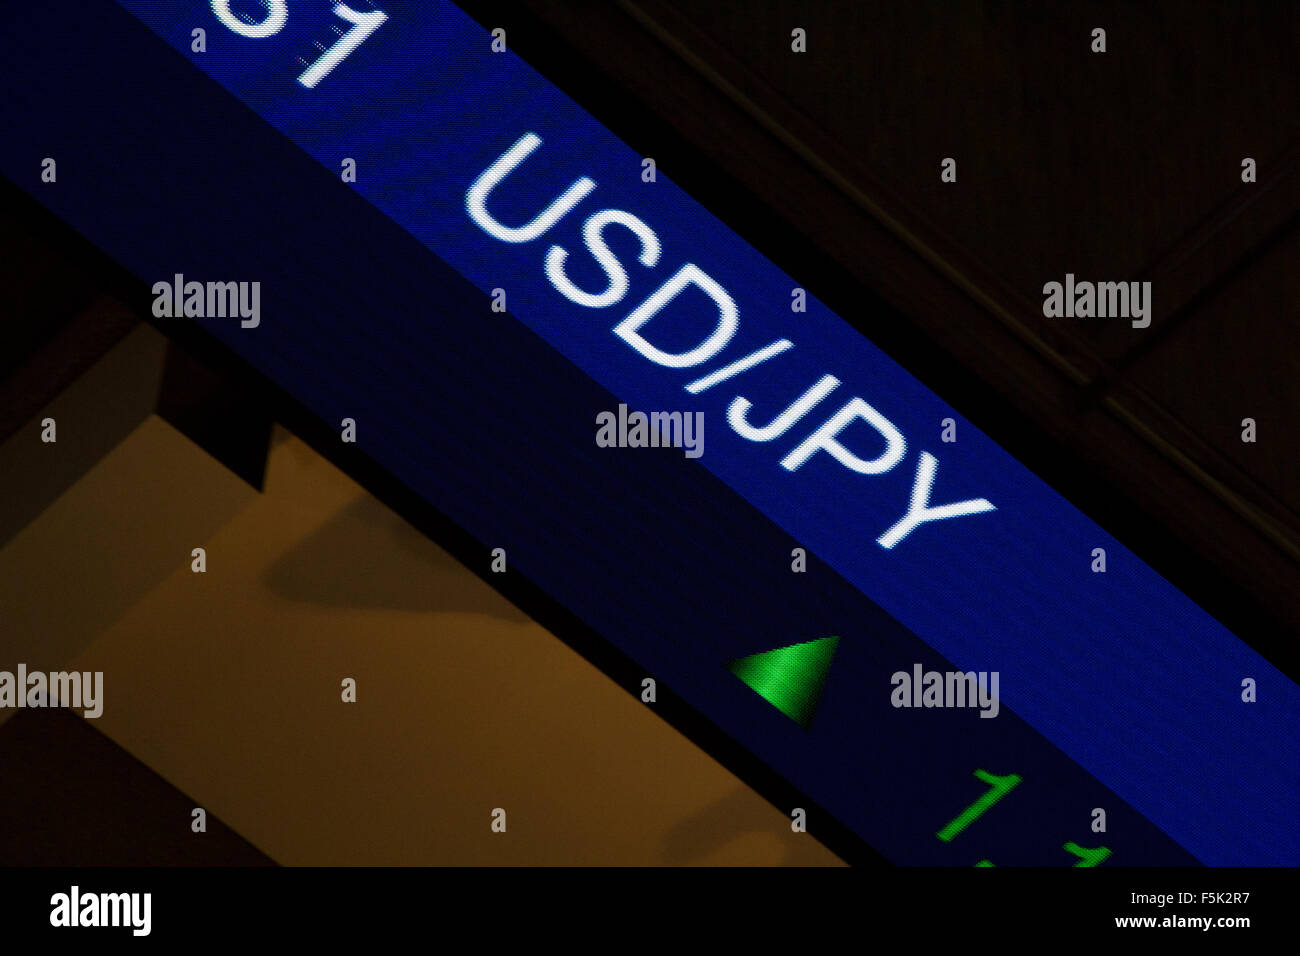 Display stock market charts on blue neon line with blurred office background.American / Japanese currency rate - Stock Image